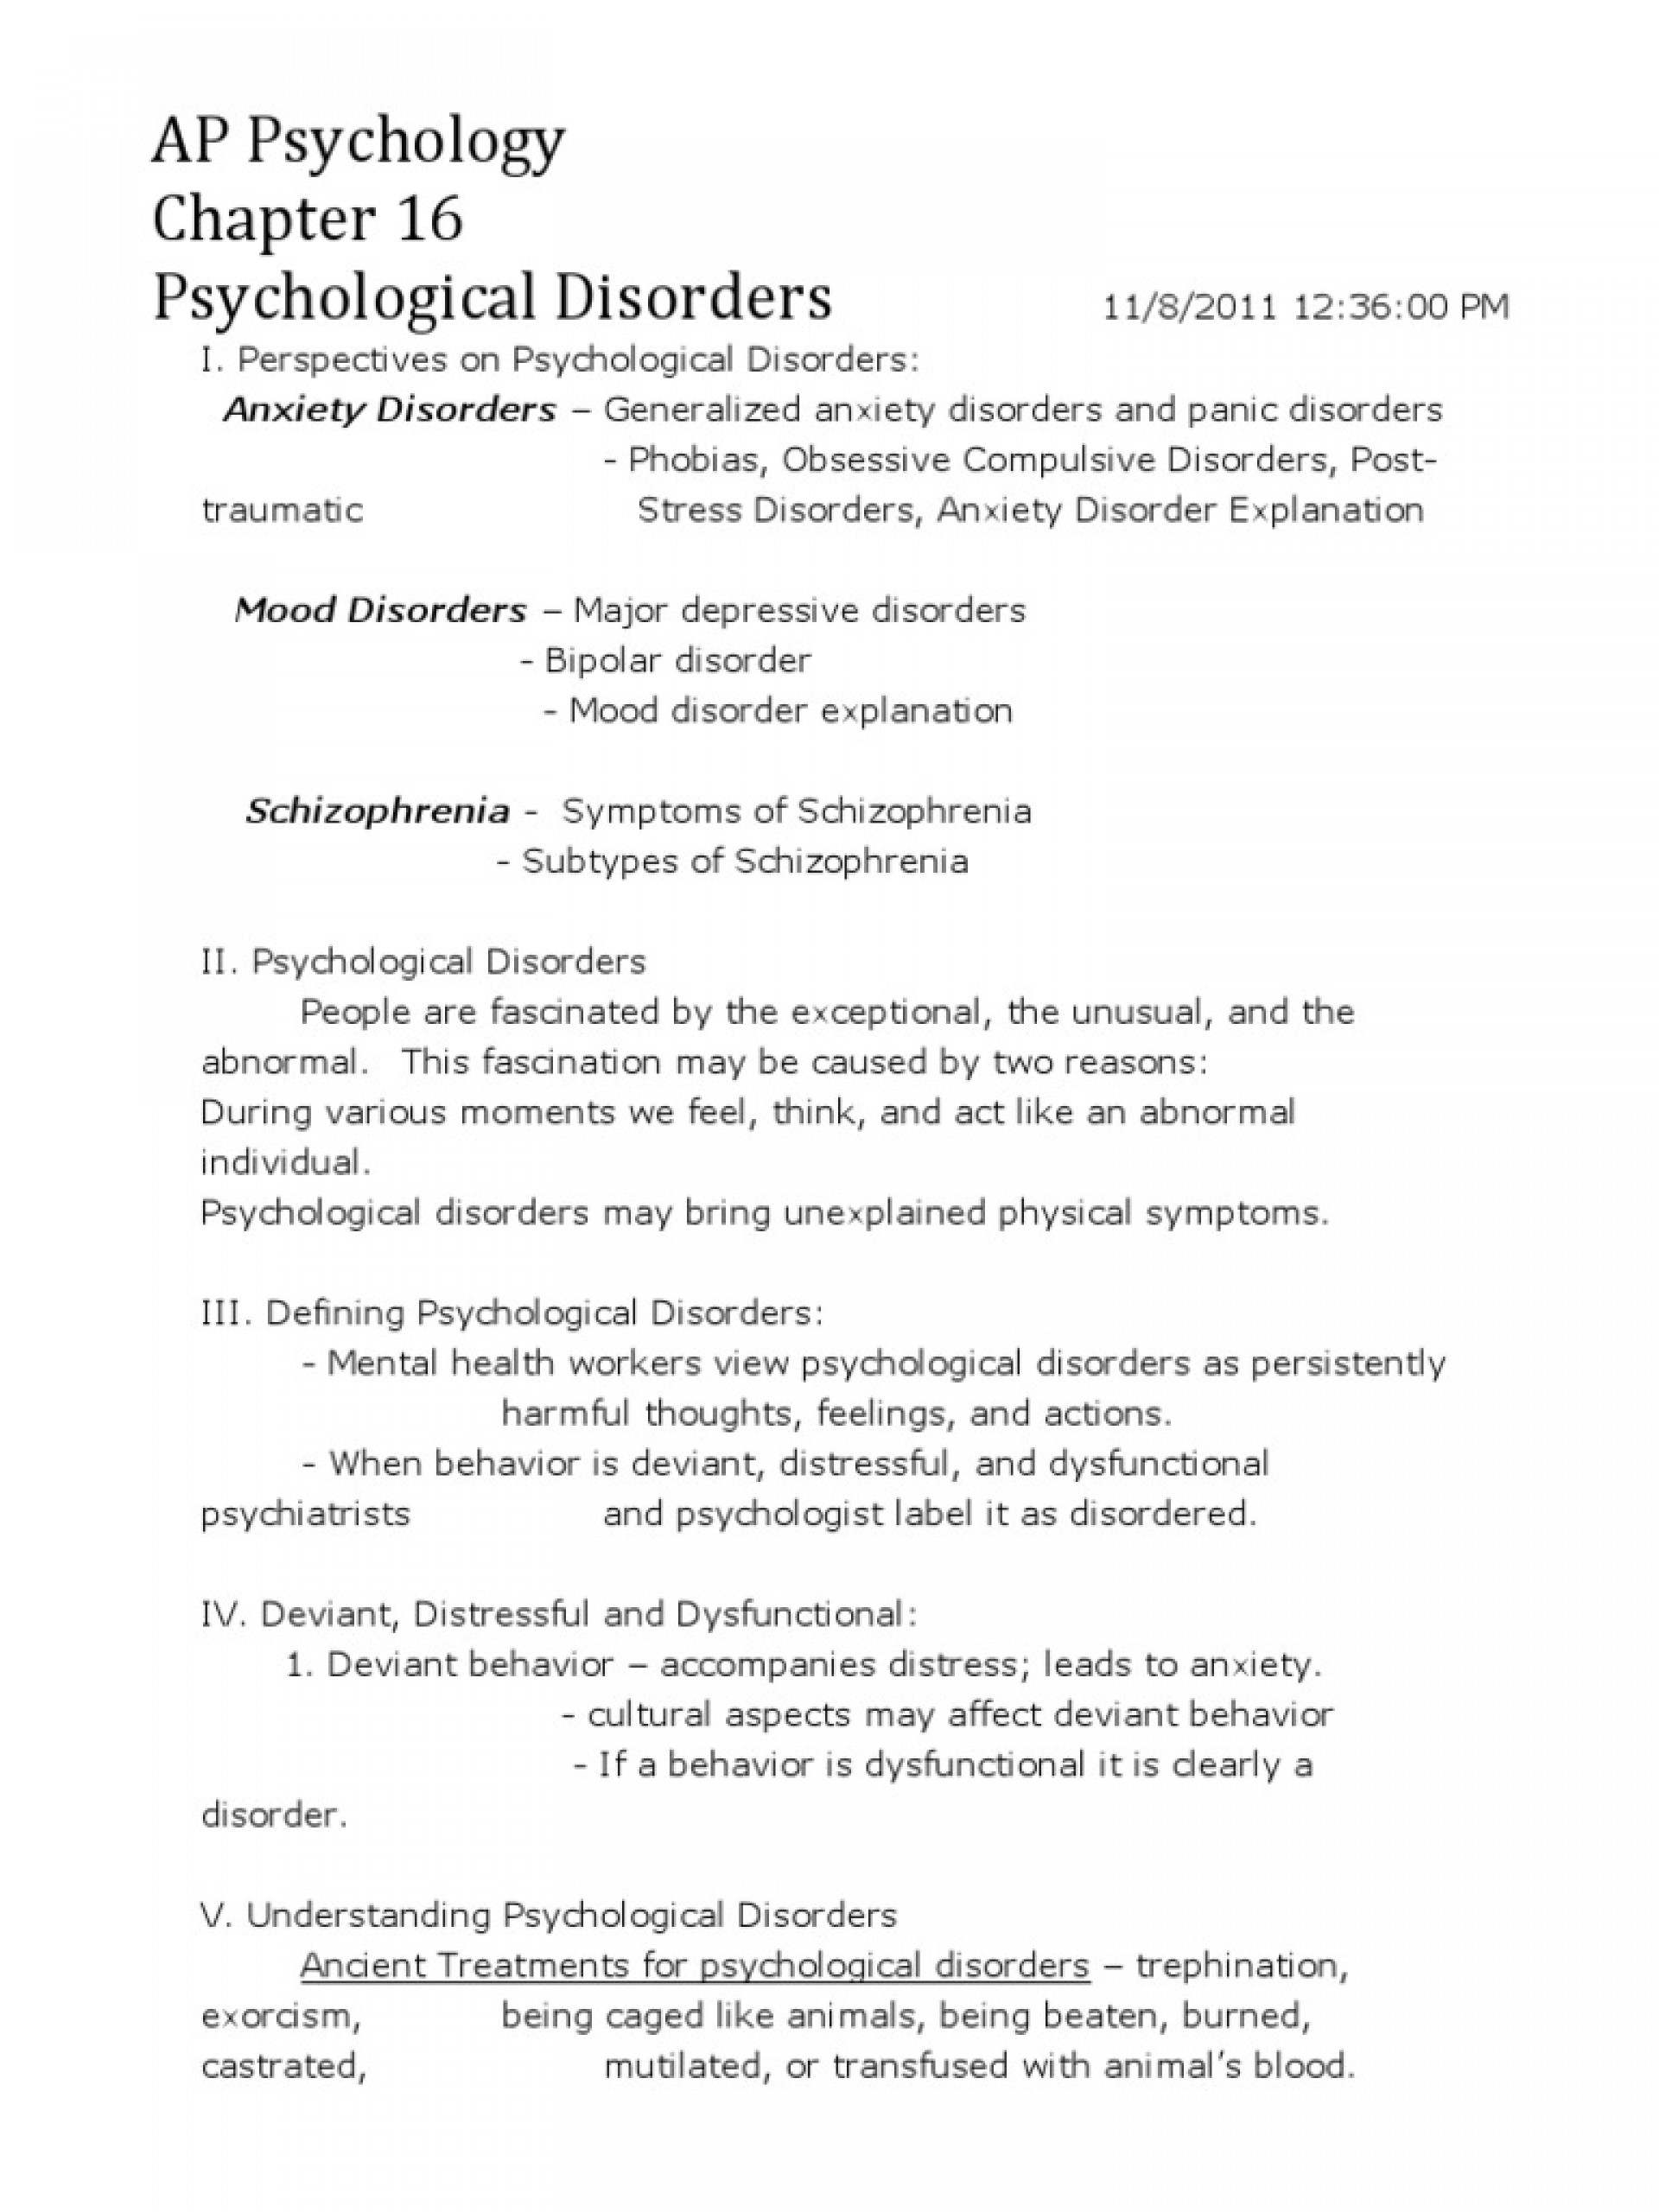 009 Bipolar Disorder Essay Topics Title Pdf College Introduction Question Conclusion Examples Outline Research Paper Criminal Fearsome 100 Justice 1920